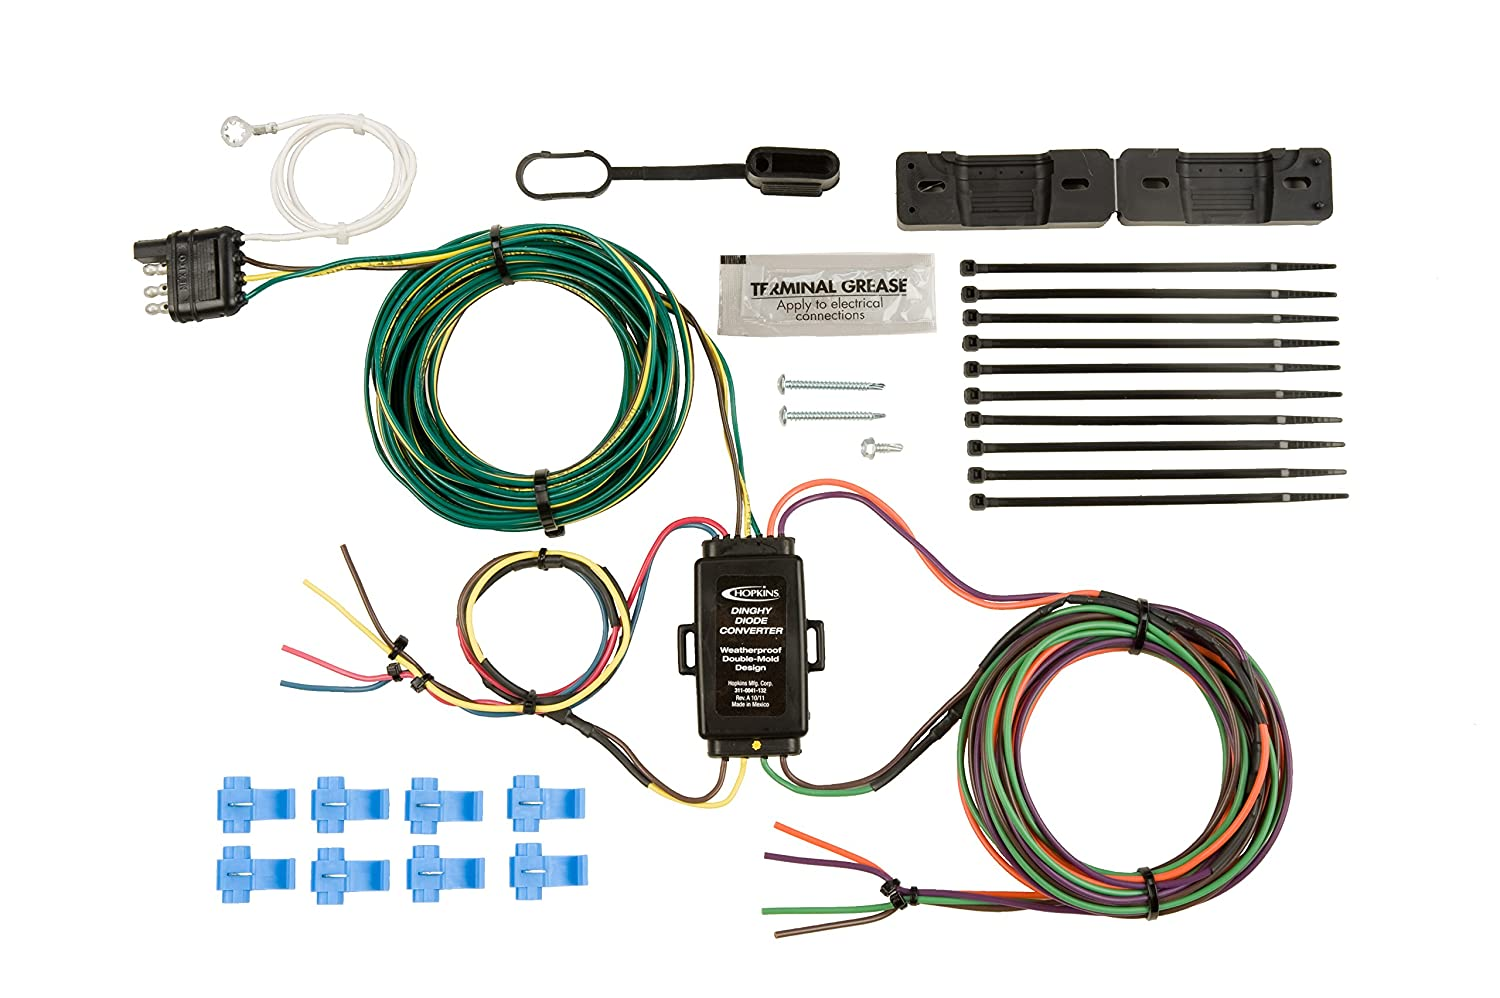 Hopkins 55999 Universal Towed Vehicle Wiring Kit Automotive Jeep Jk Trailer Harness Install